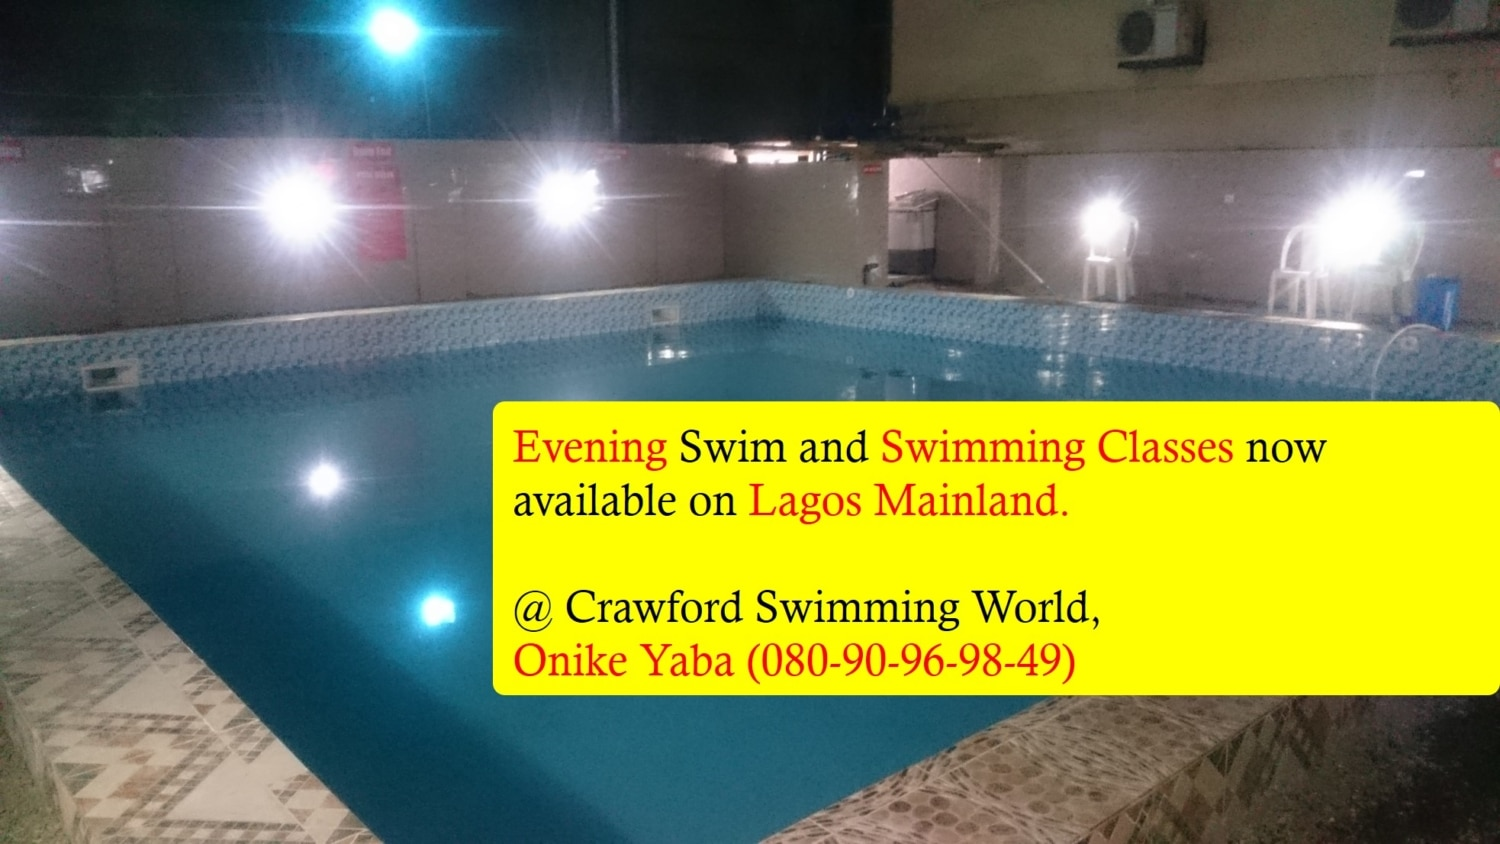 Evening Swimming lessons in Lagos